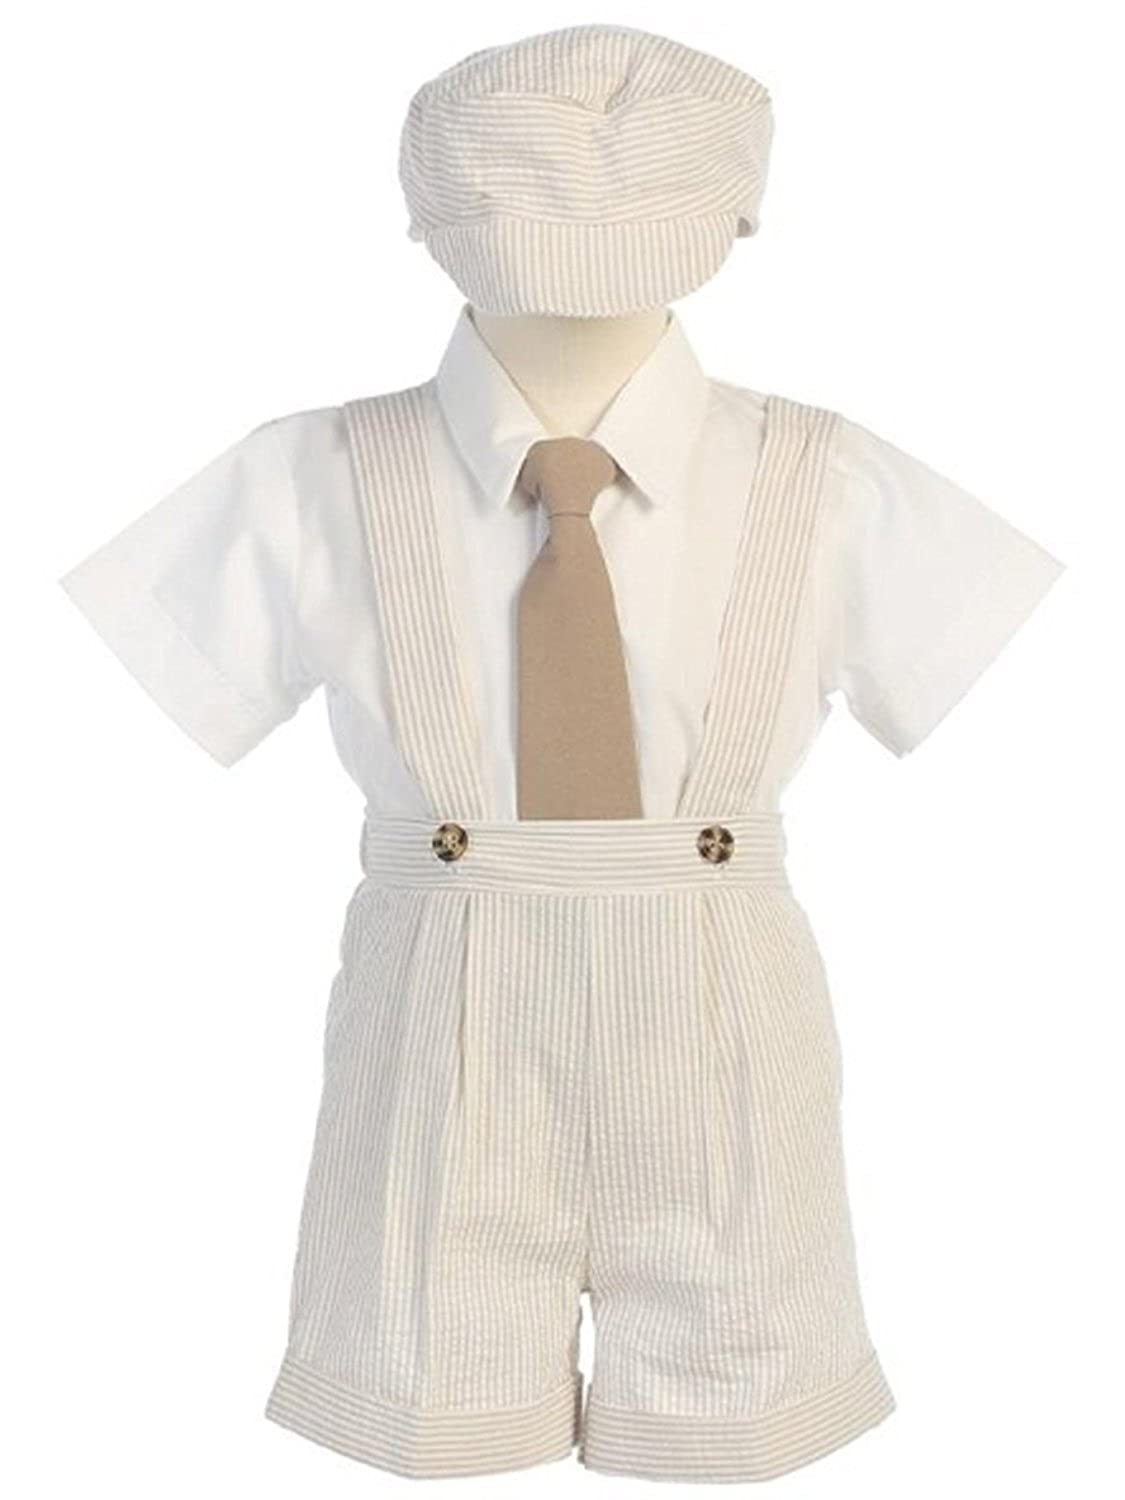 Vintage Style Children's Clothing: Girls, Boys, Baby, Toddler DapperLads Lito Little Boys Khaki Seersucker 4 Pc Suspender Shorts $35.98 AT vintagedancer.com